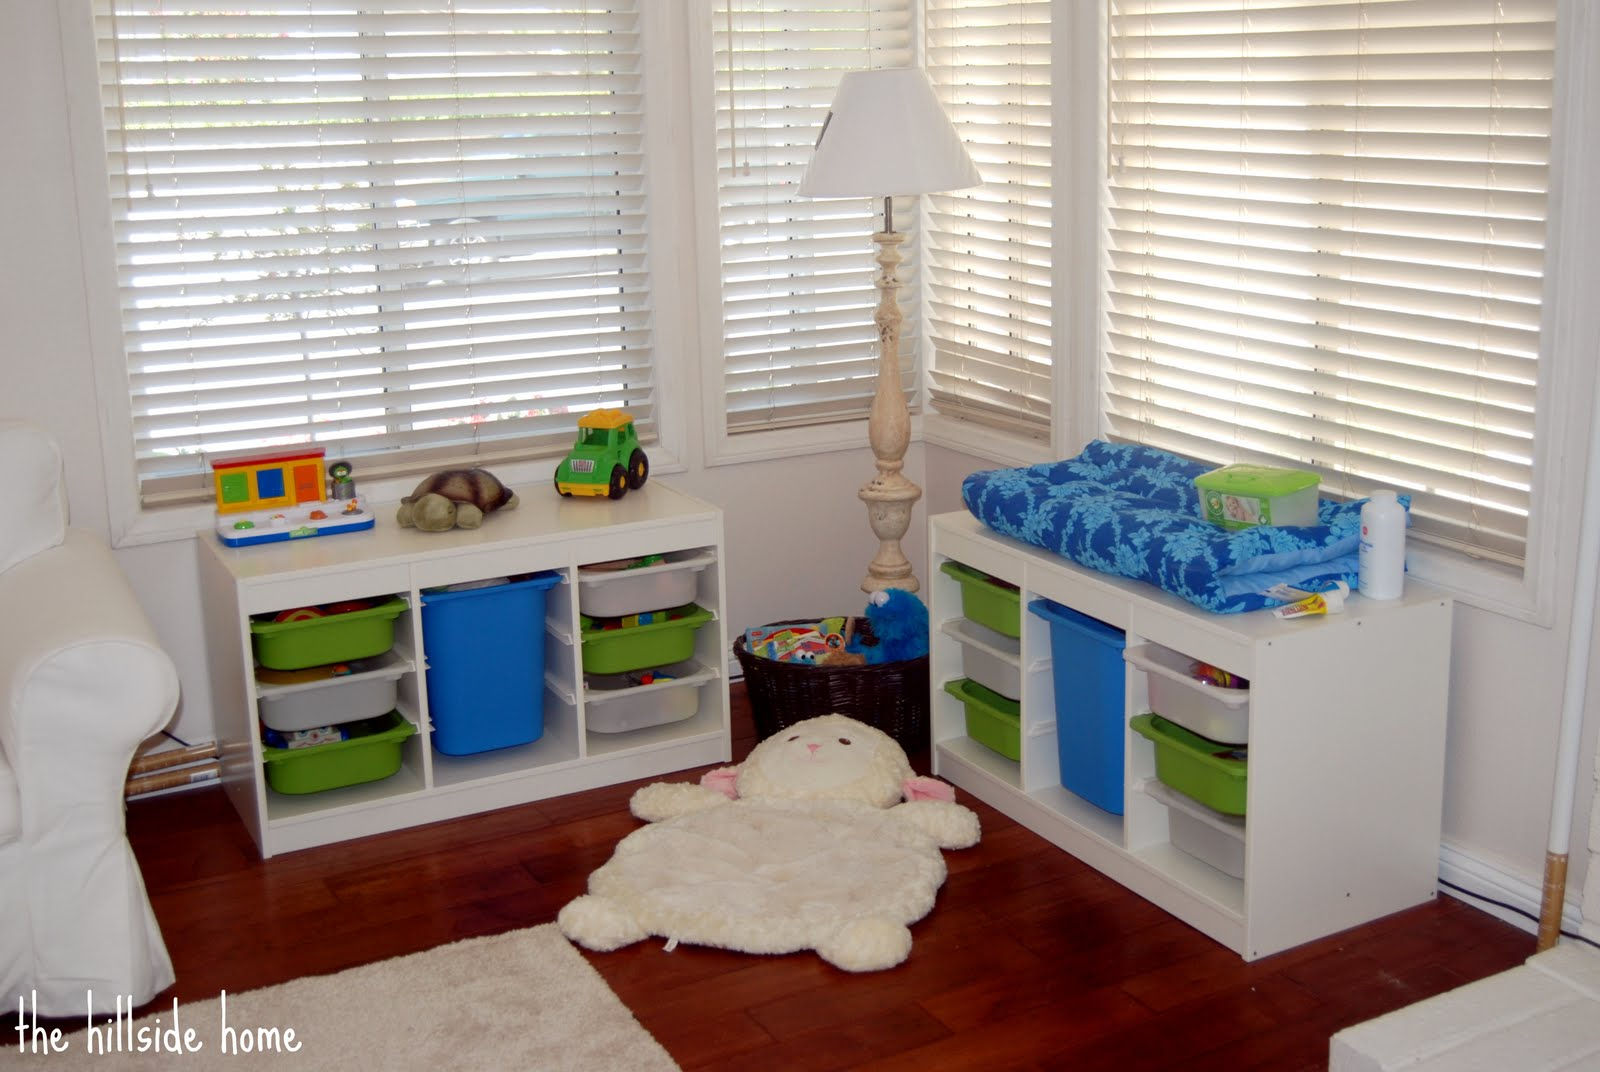 10 Types Of Toy Organizers For Kids Bedrooms And Playrooms: House Of Jade Interiors Blog